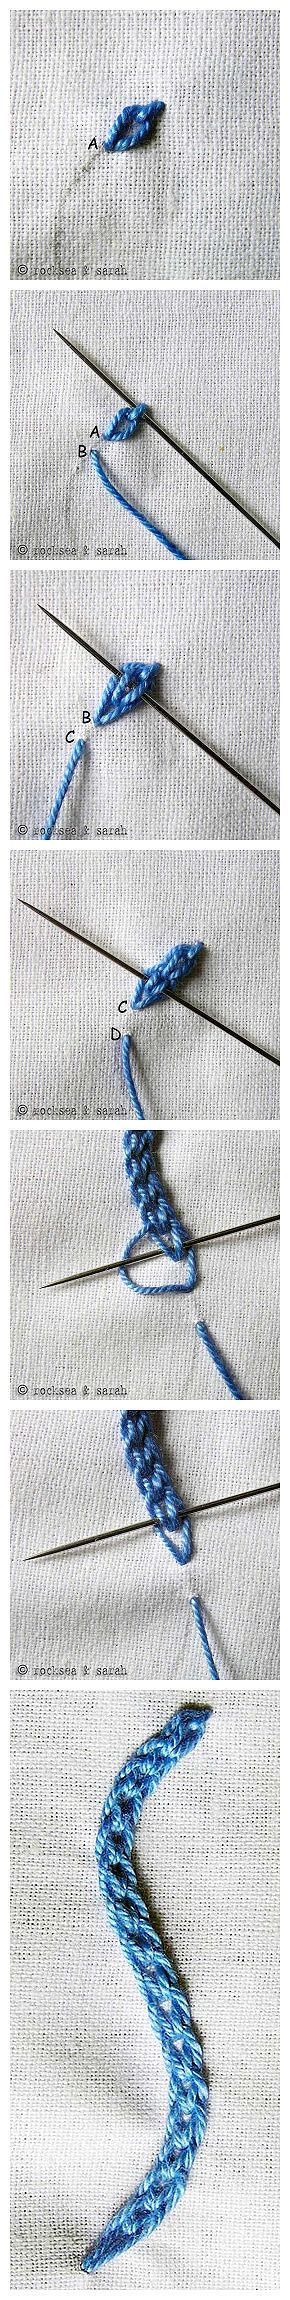 Hungarian braided chain stitch - great for thicker outlines